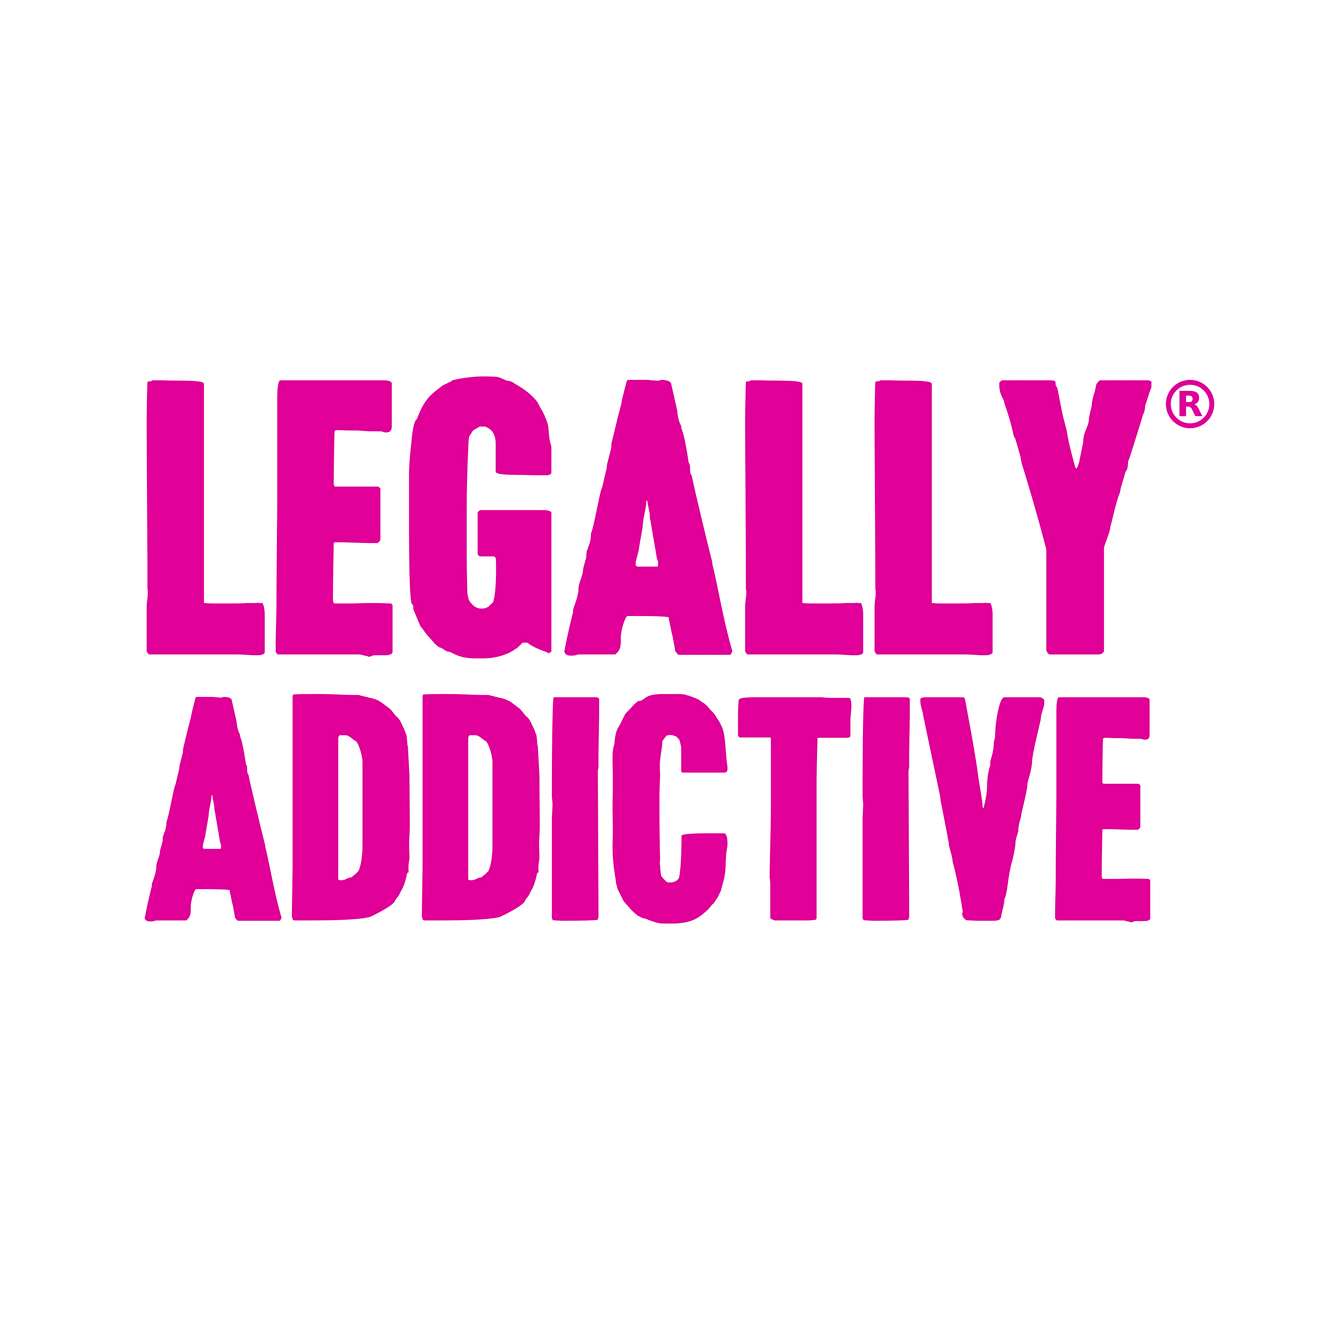 Legally Addictive